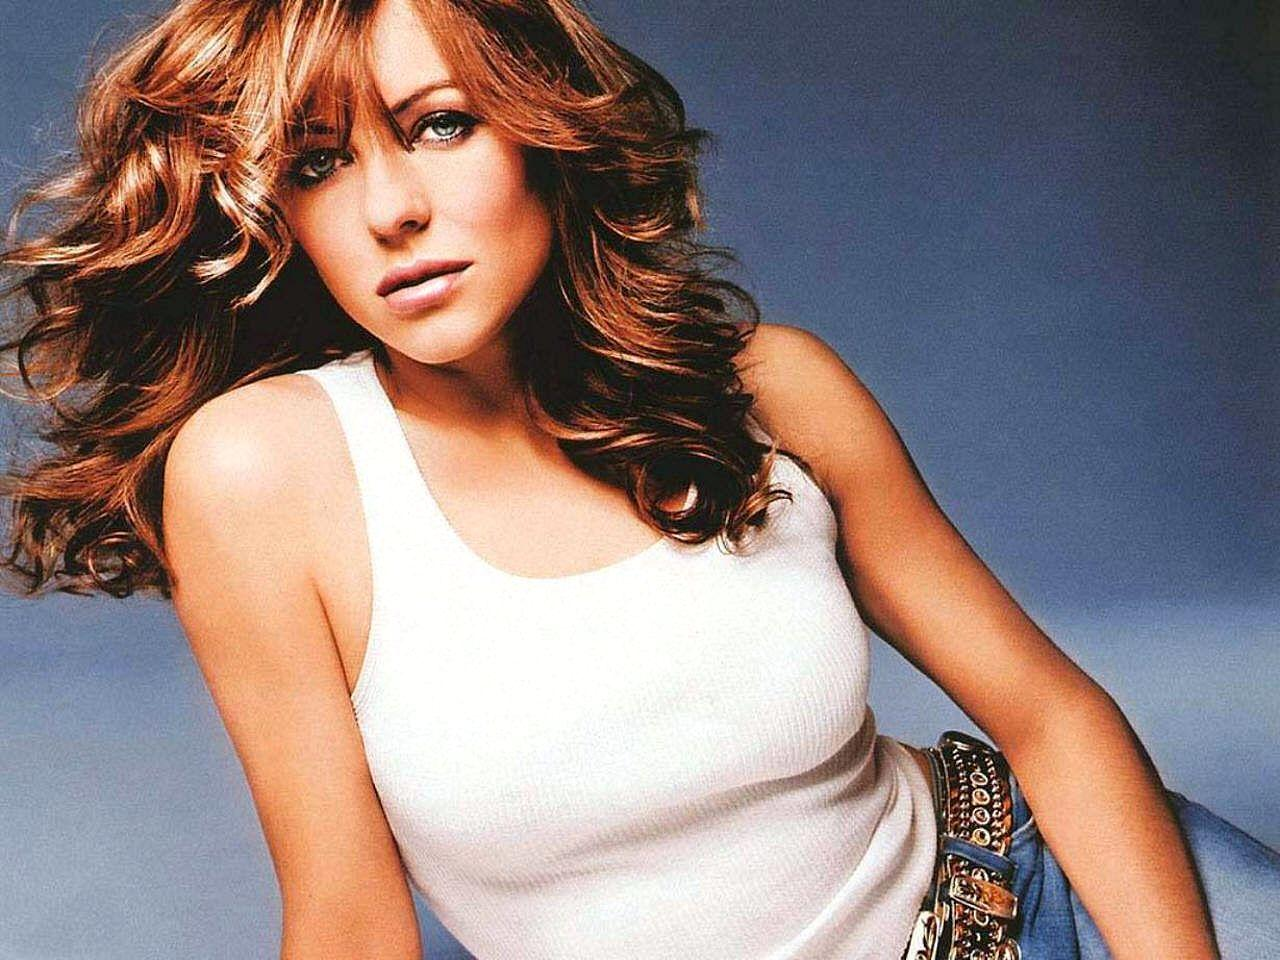 Elizabeth Hurley Wallpaper | 1280x960 | ID:2050 - WallpaperVortex.com